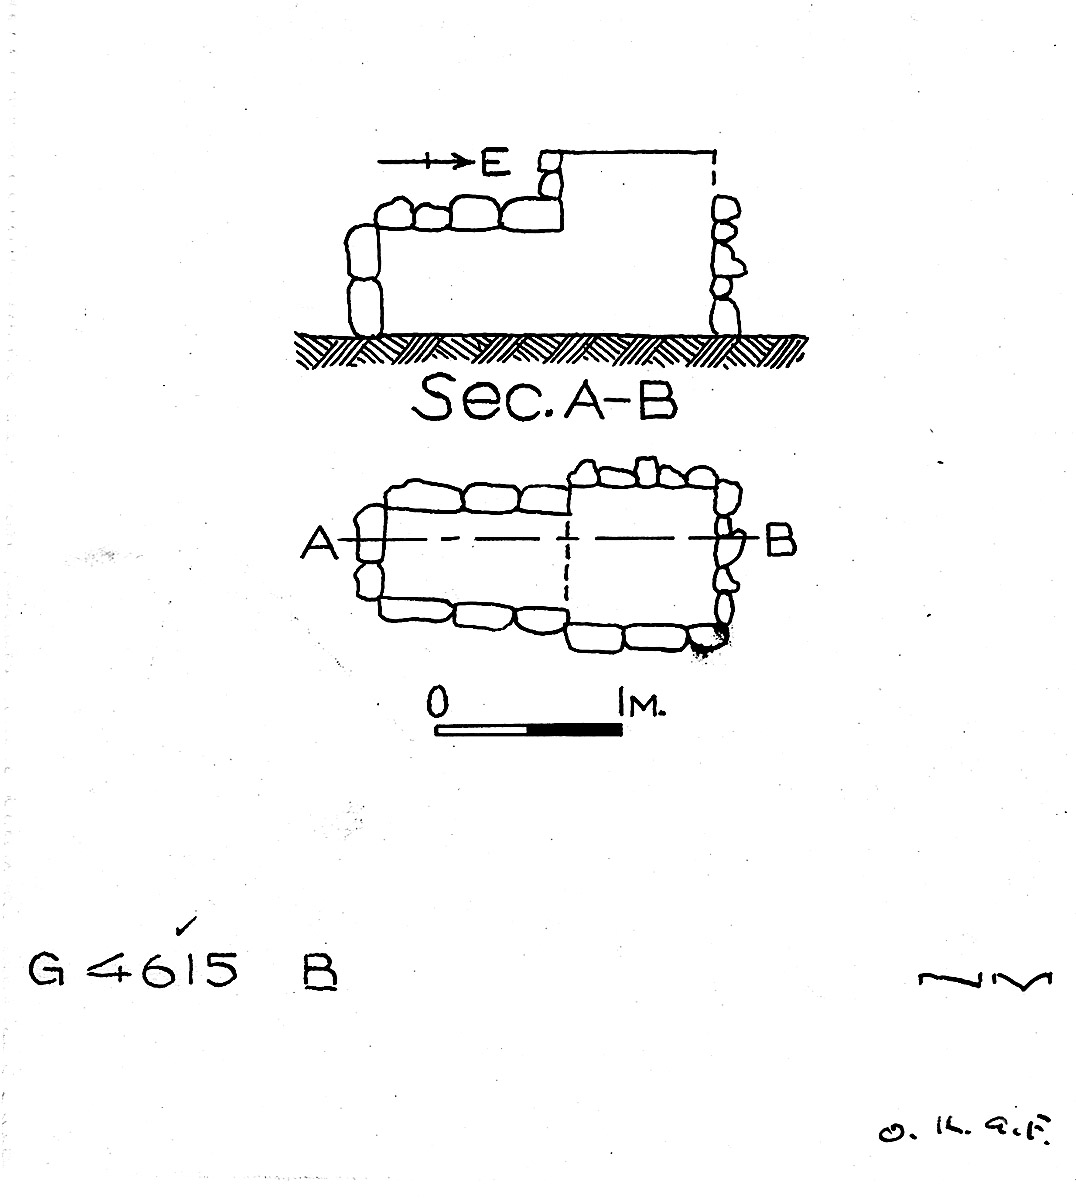 Maps and plans: G 4615, Shaft B